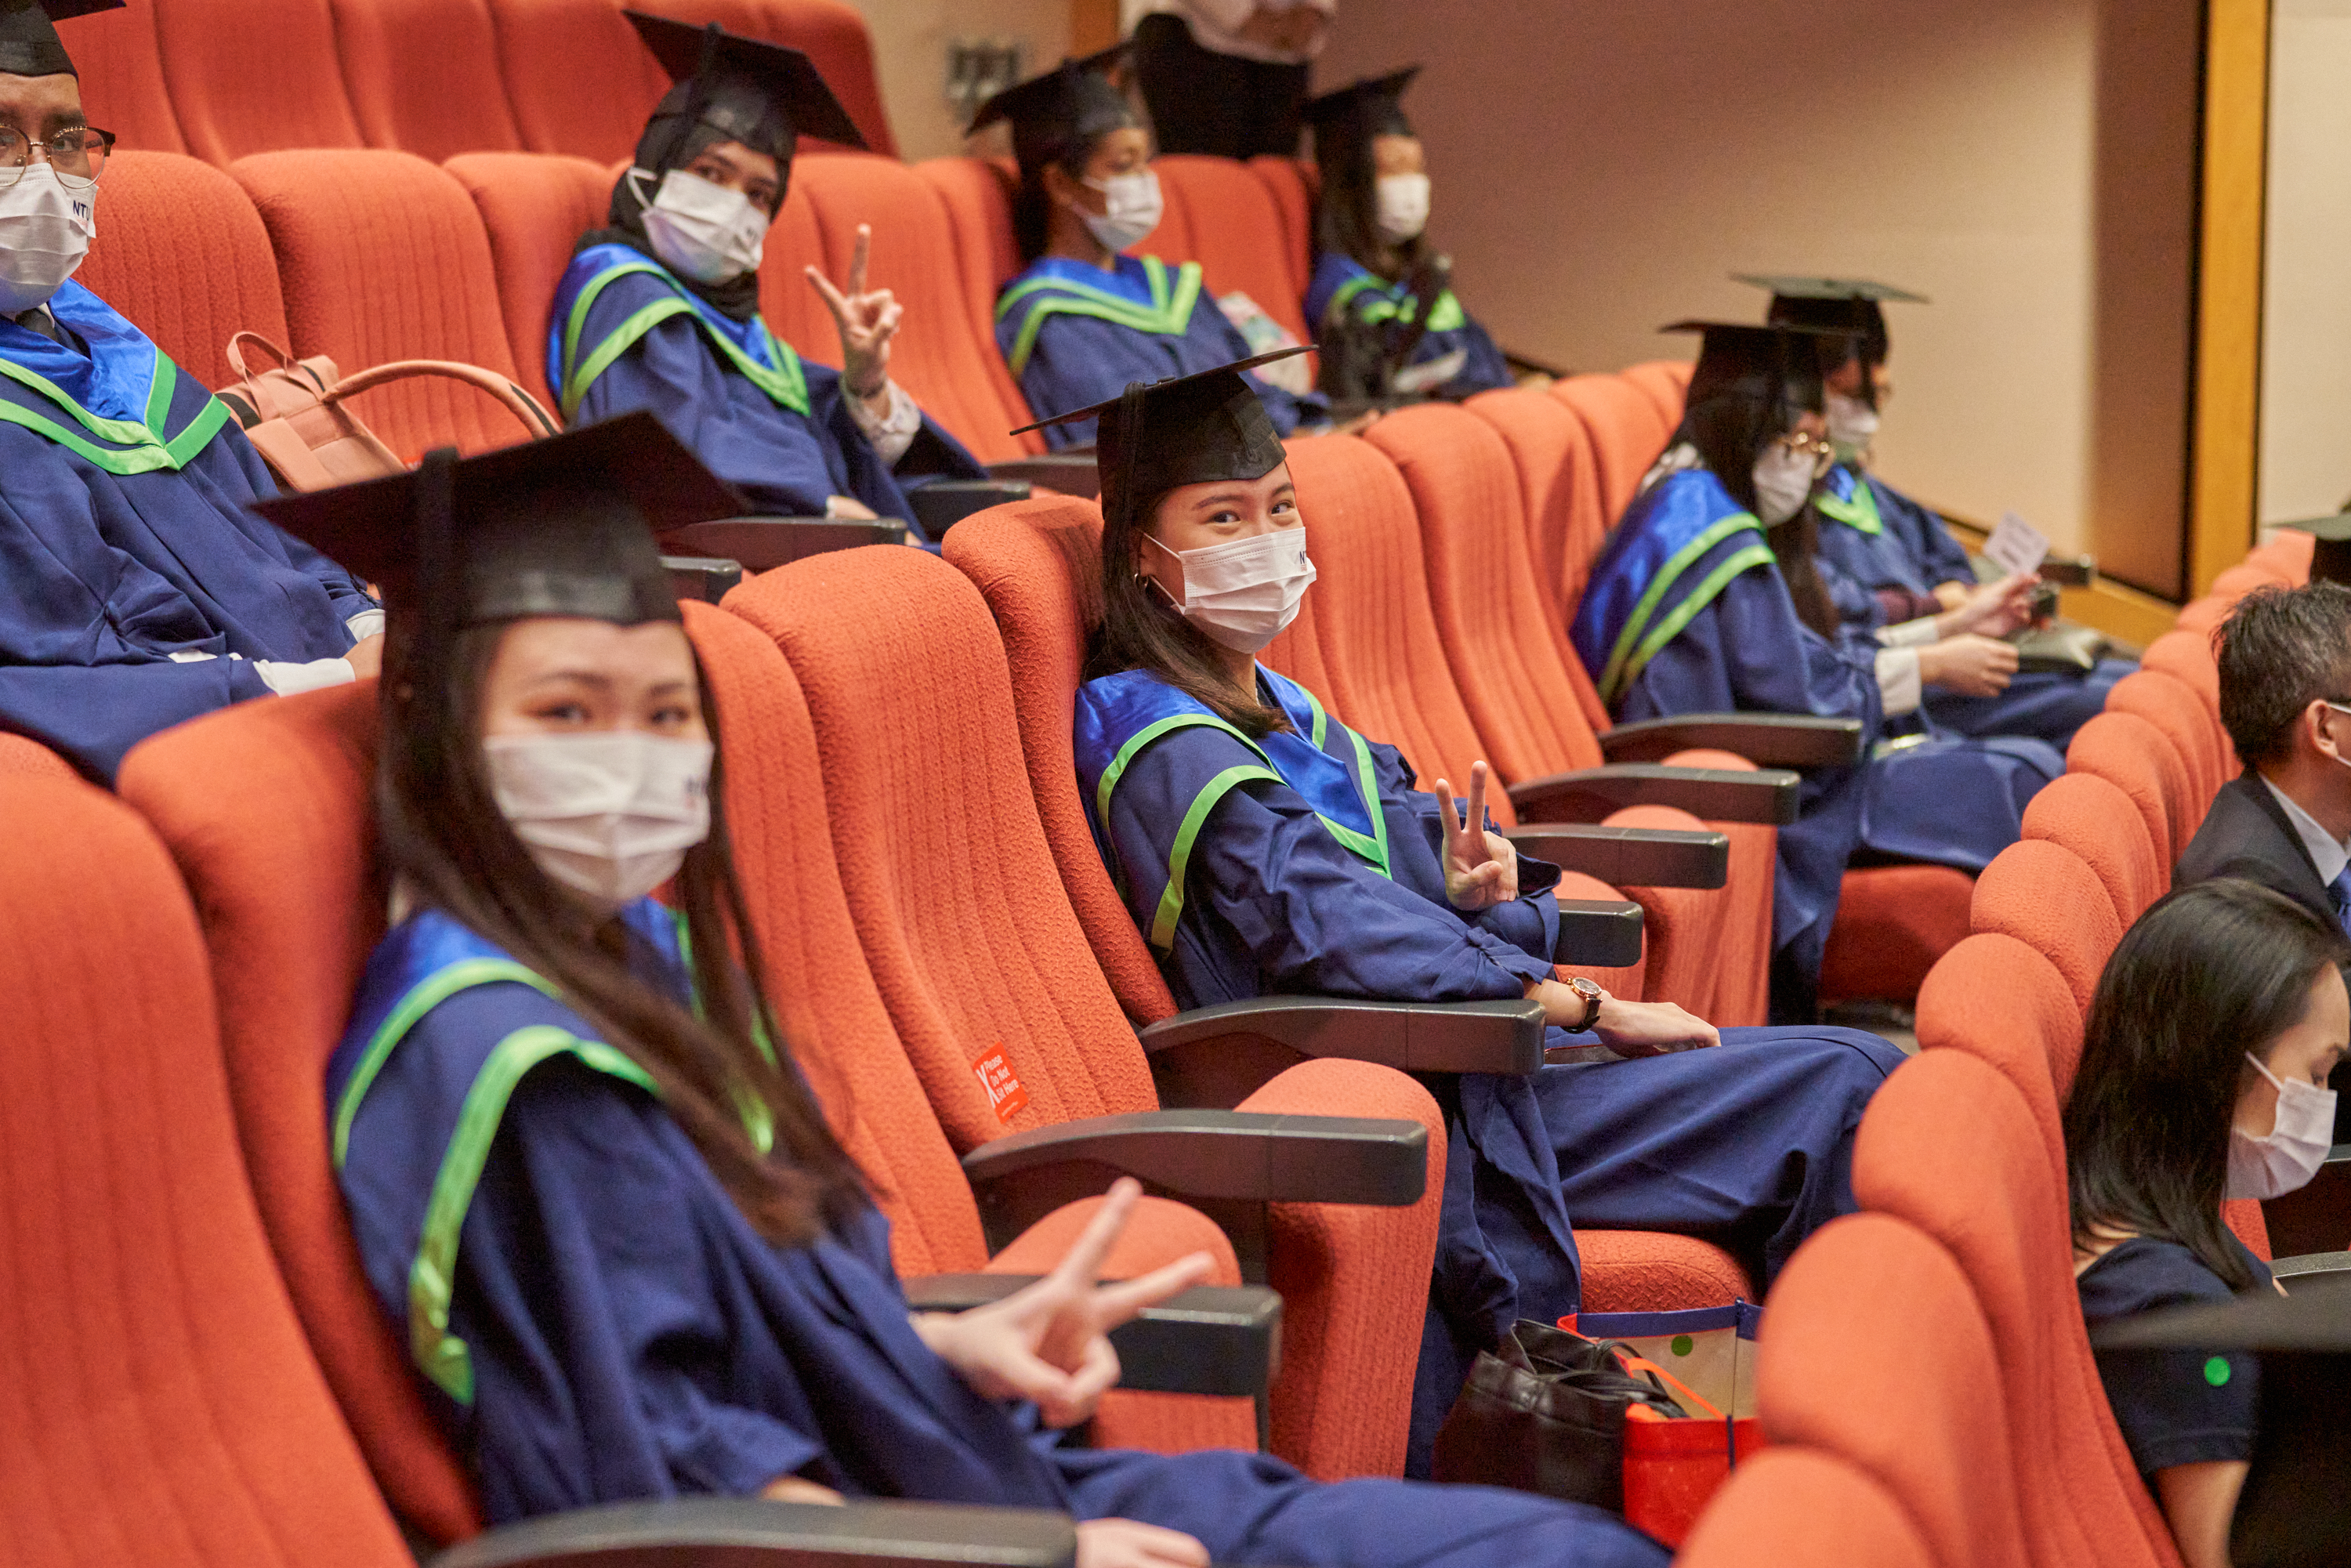 NTU organised more than 80 in-person graduation ceremonies for the Classes of 2020 and 2021 this year